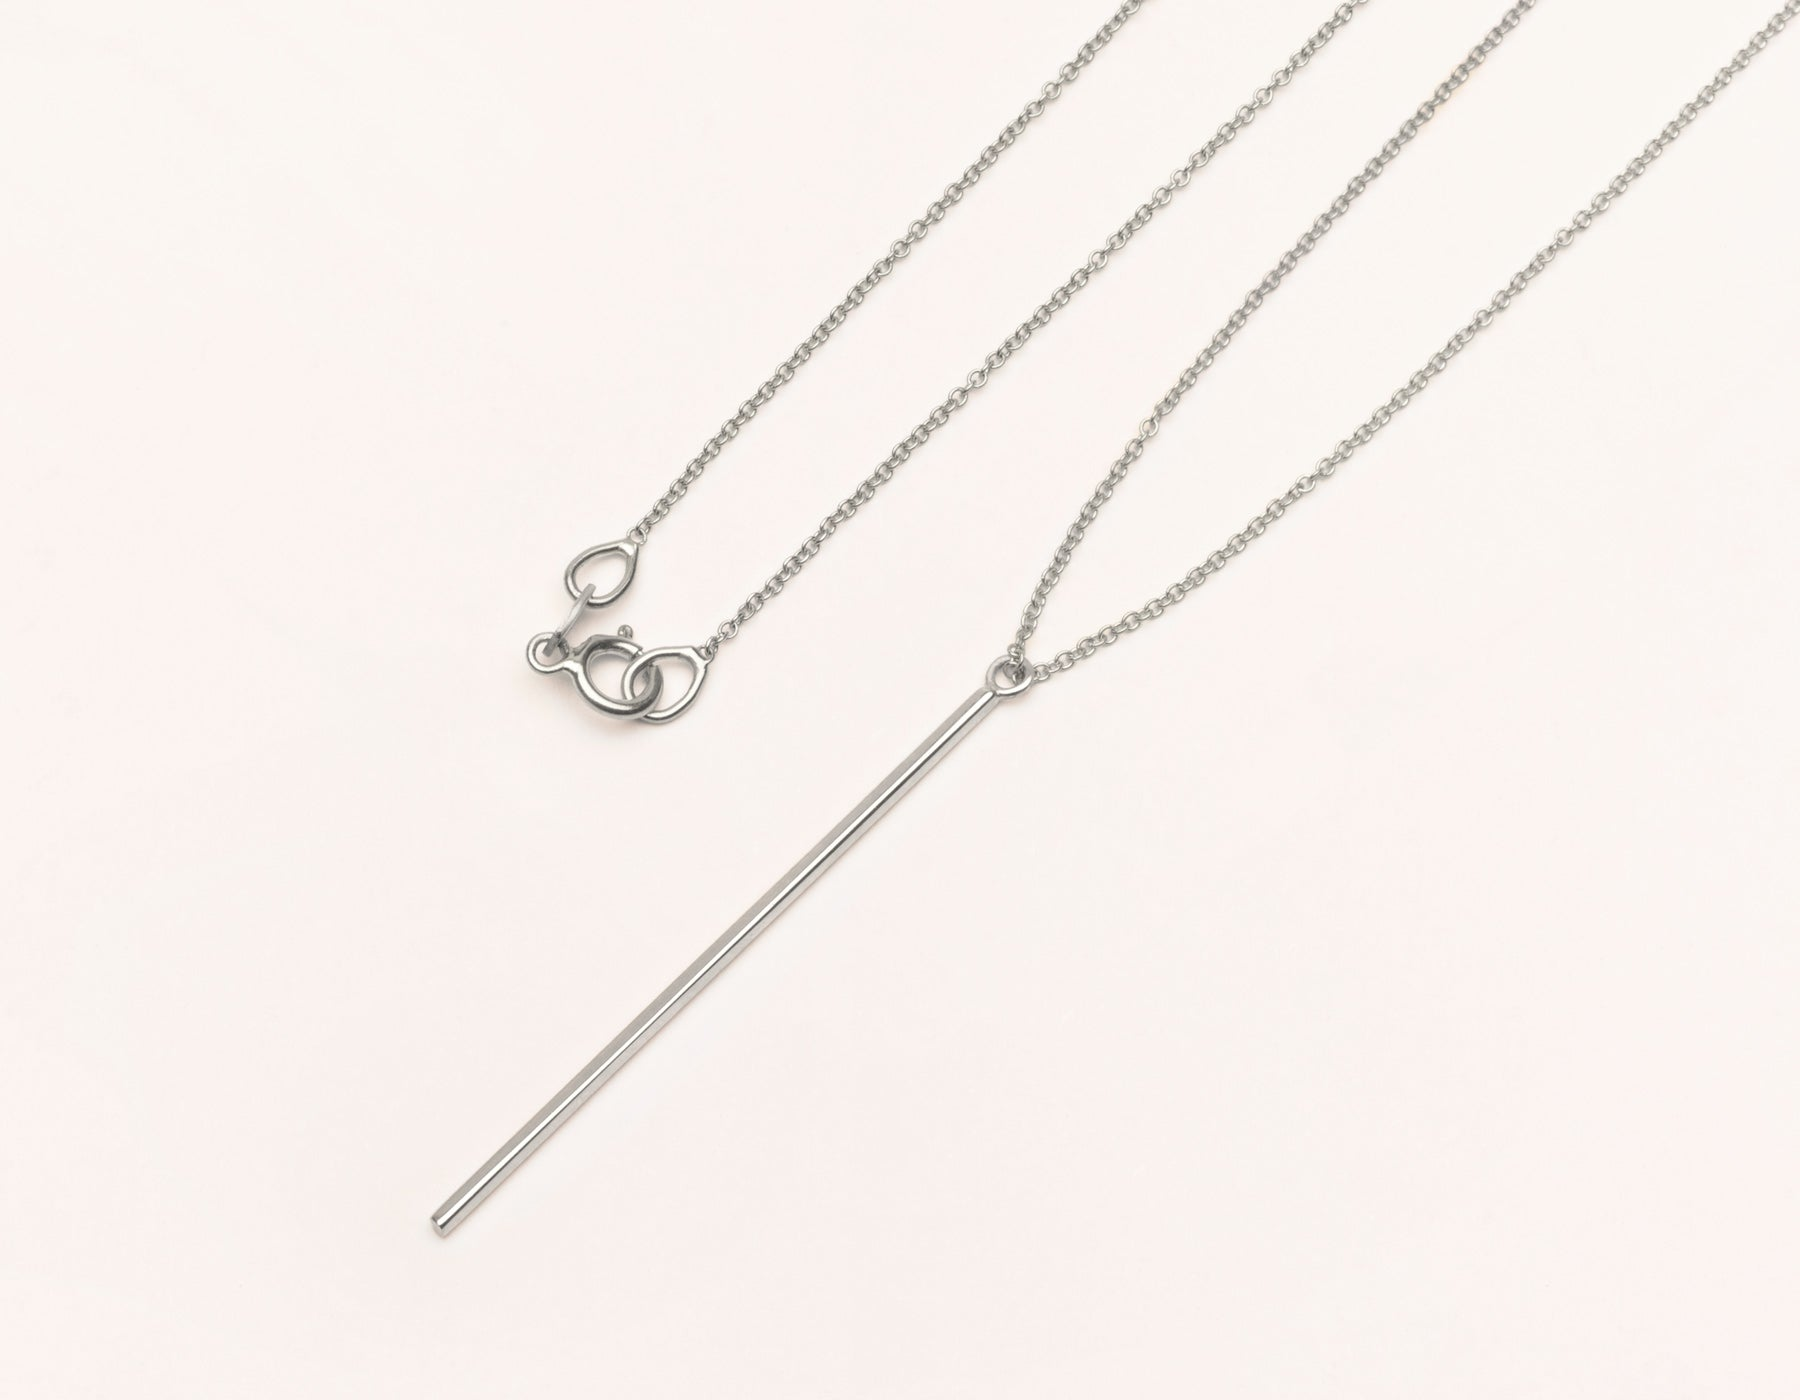 Classic Vrai & Oro Solid 14k White Gold Vertical Bar Necklace